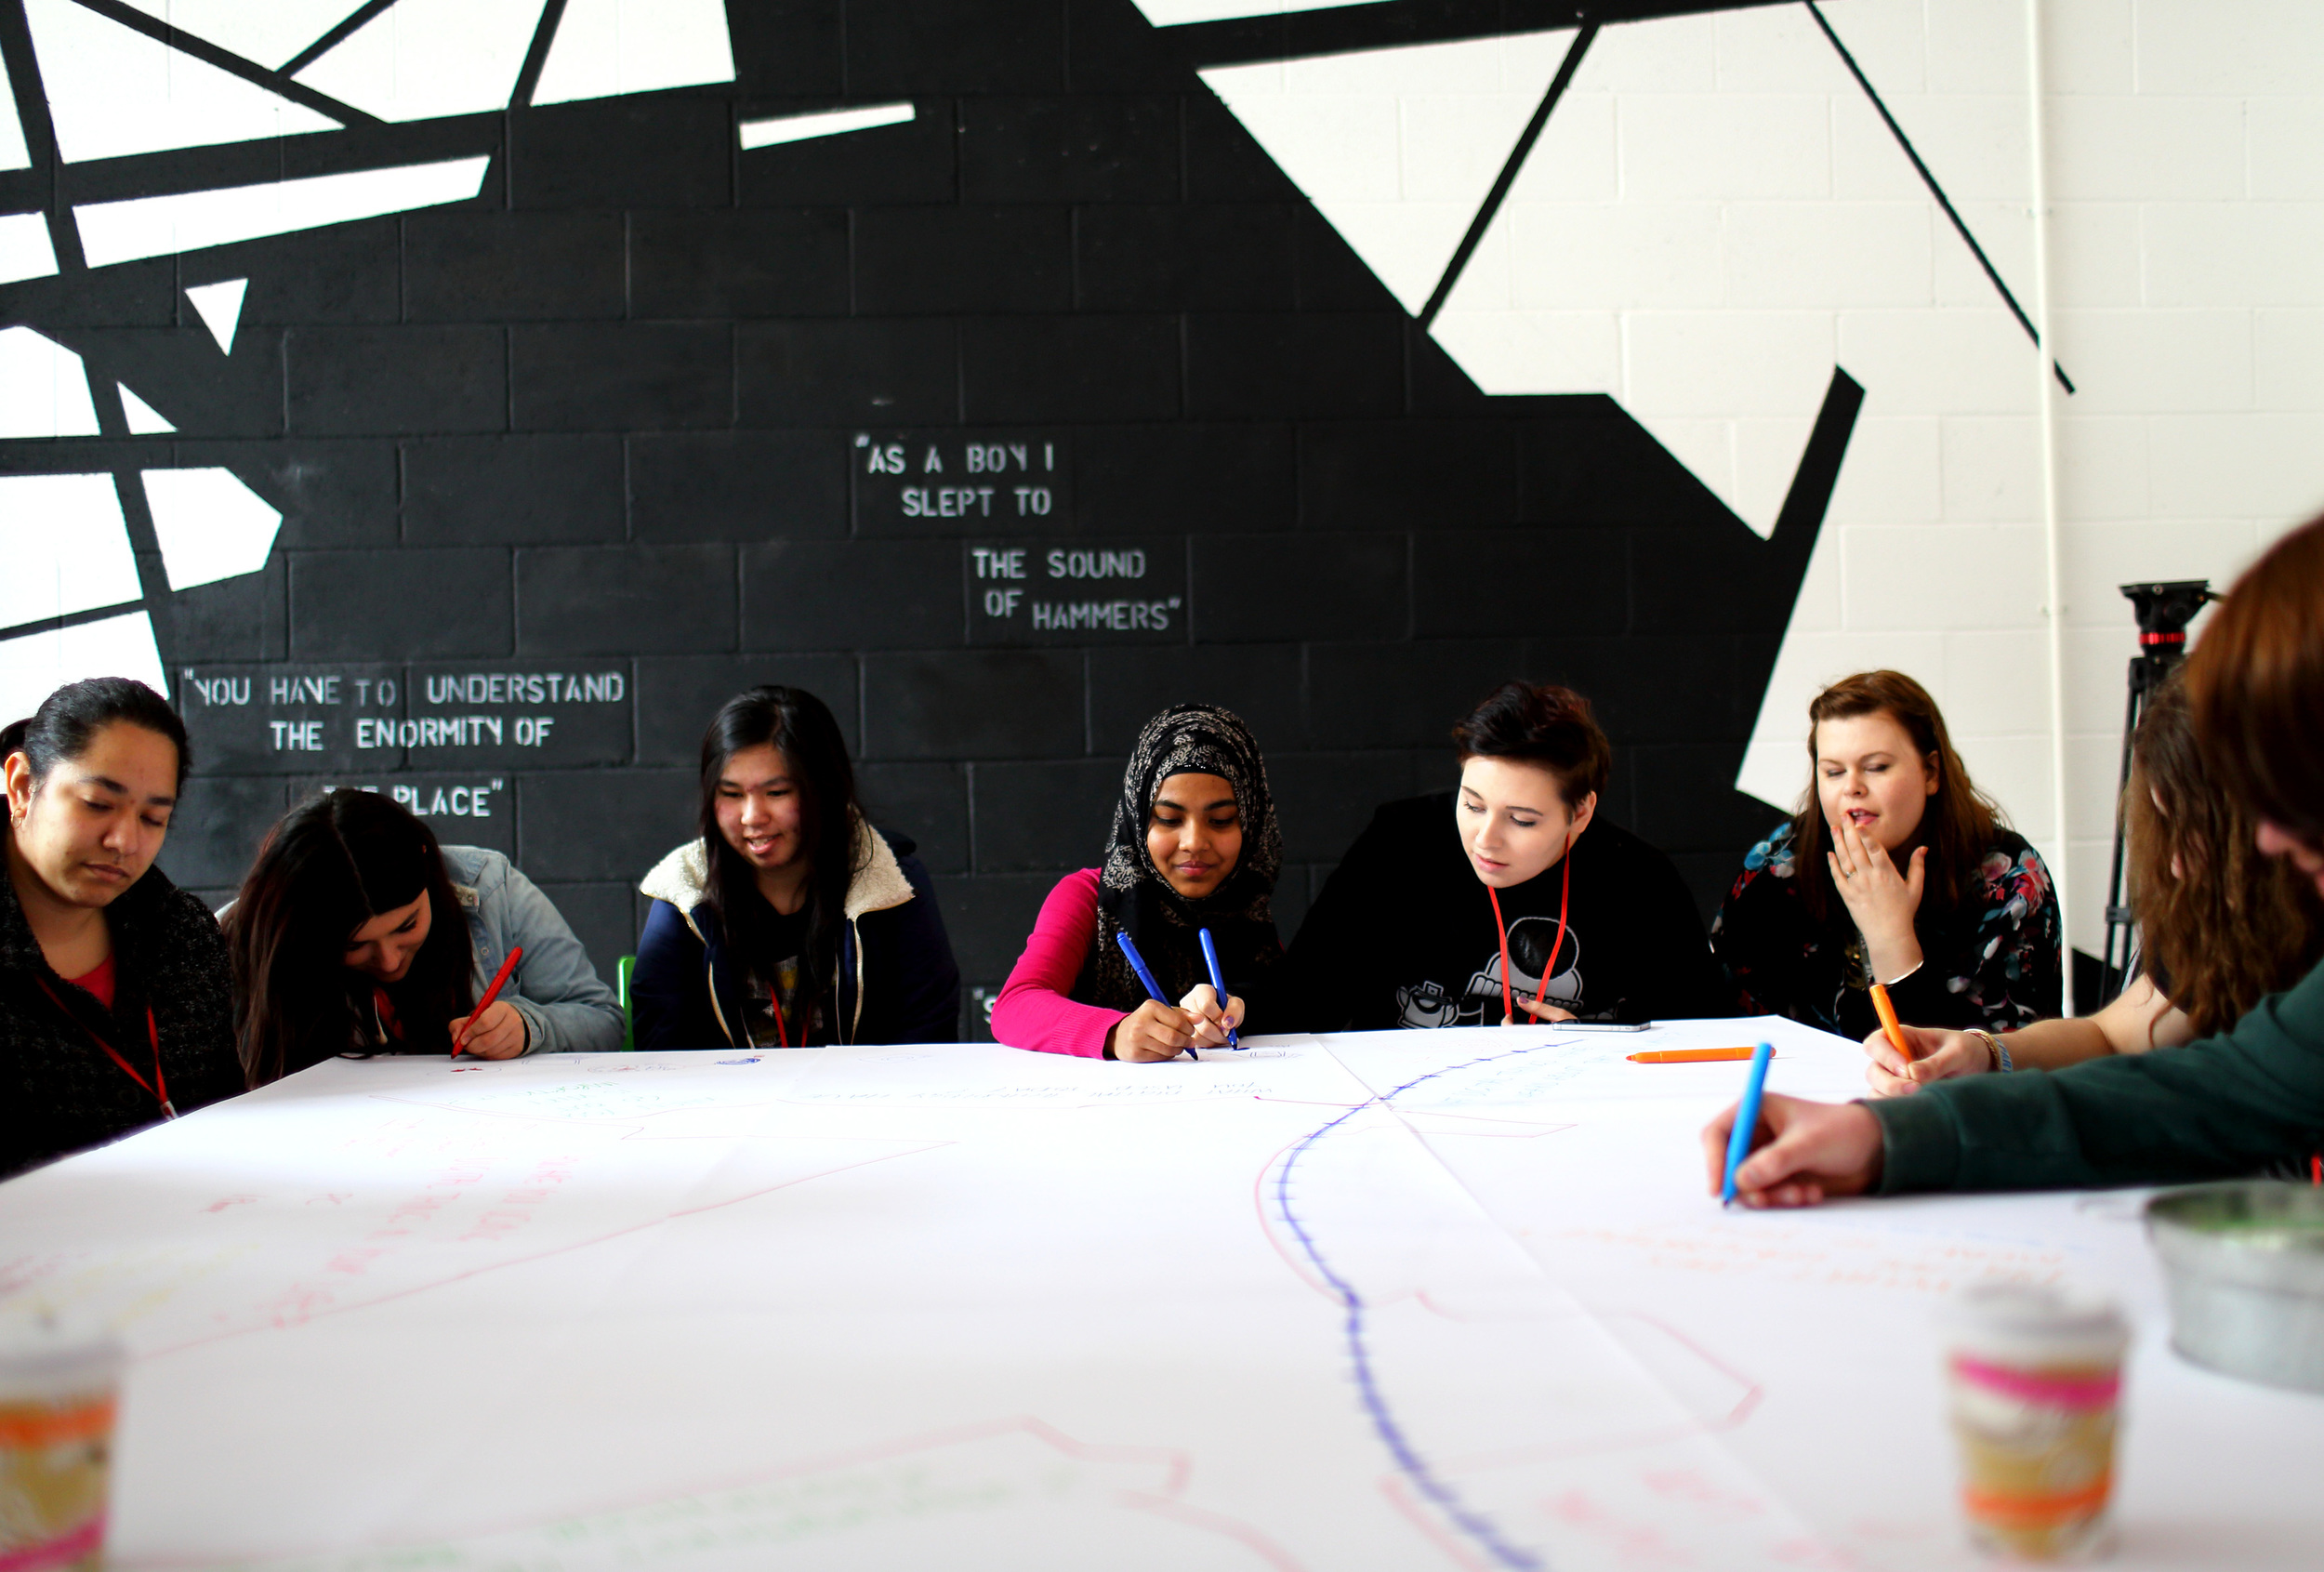 DIGITAL LONGBRIDGE Lunch Club And Workshop For Media Students - Jenny Peevers - 20th March - LPAP SPACE.jpg